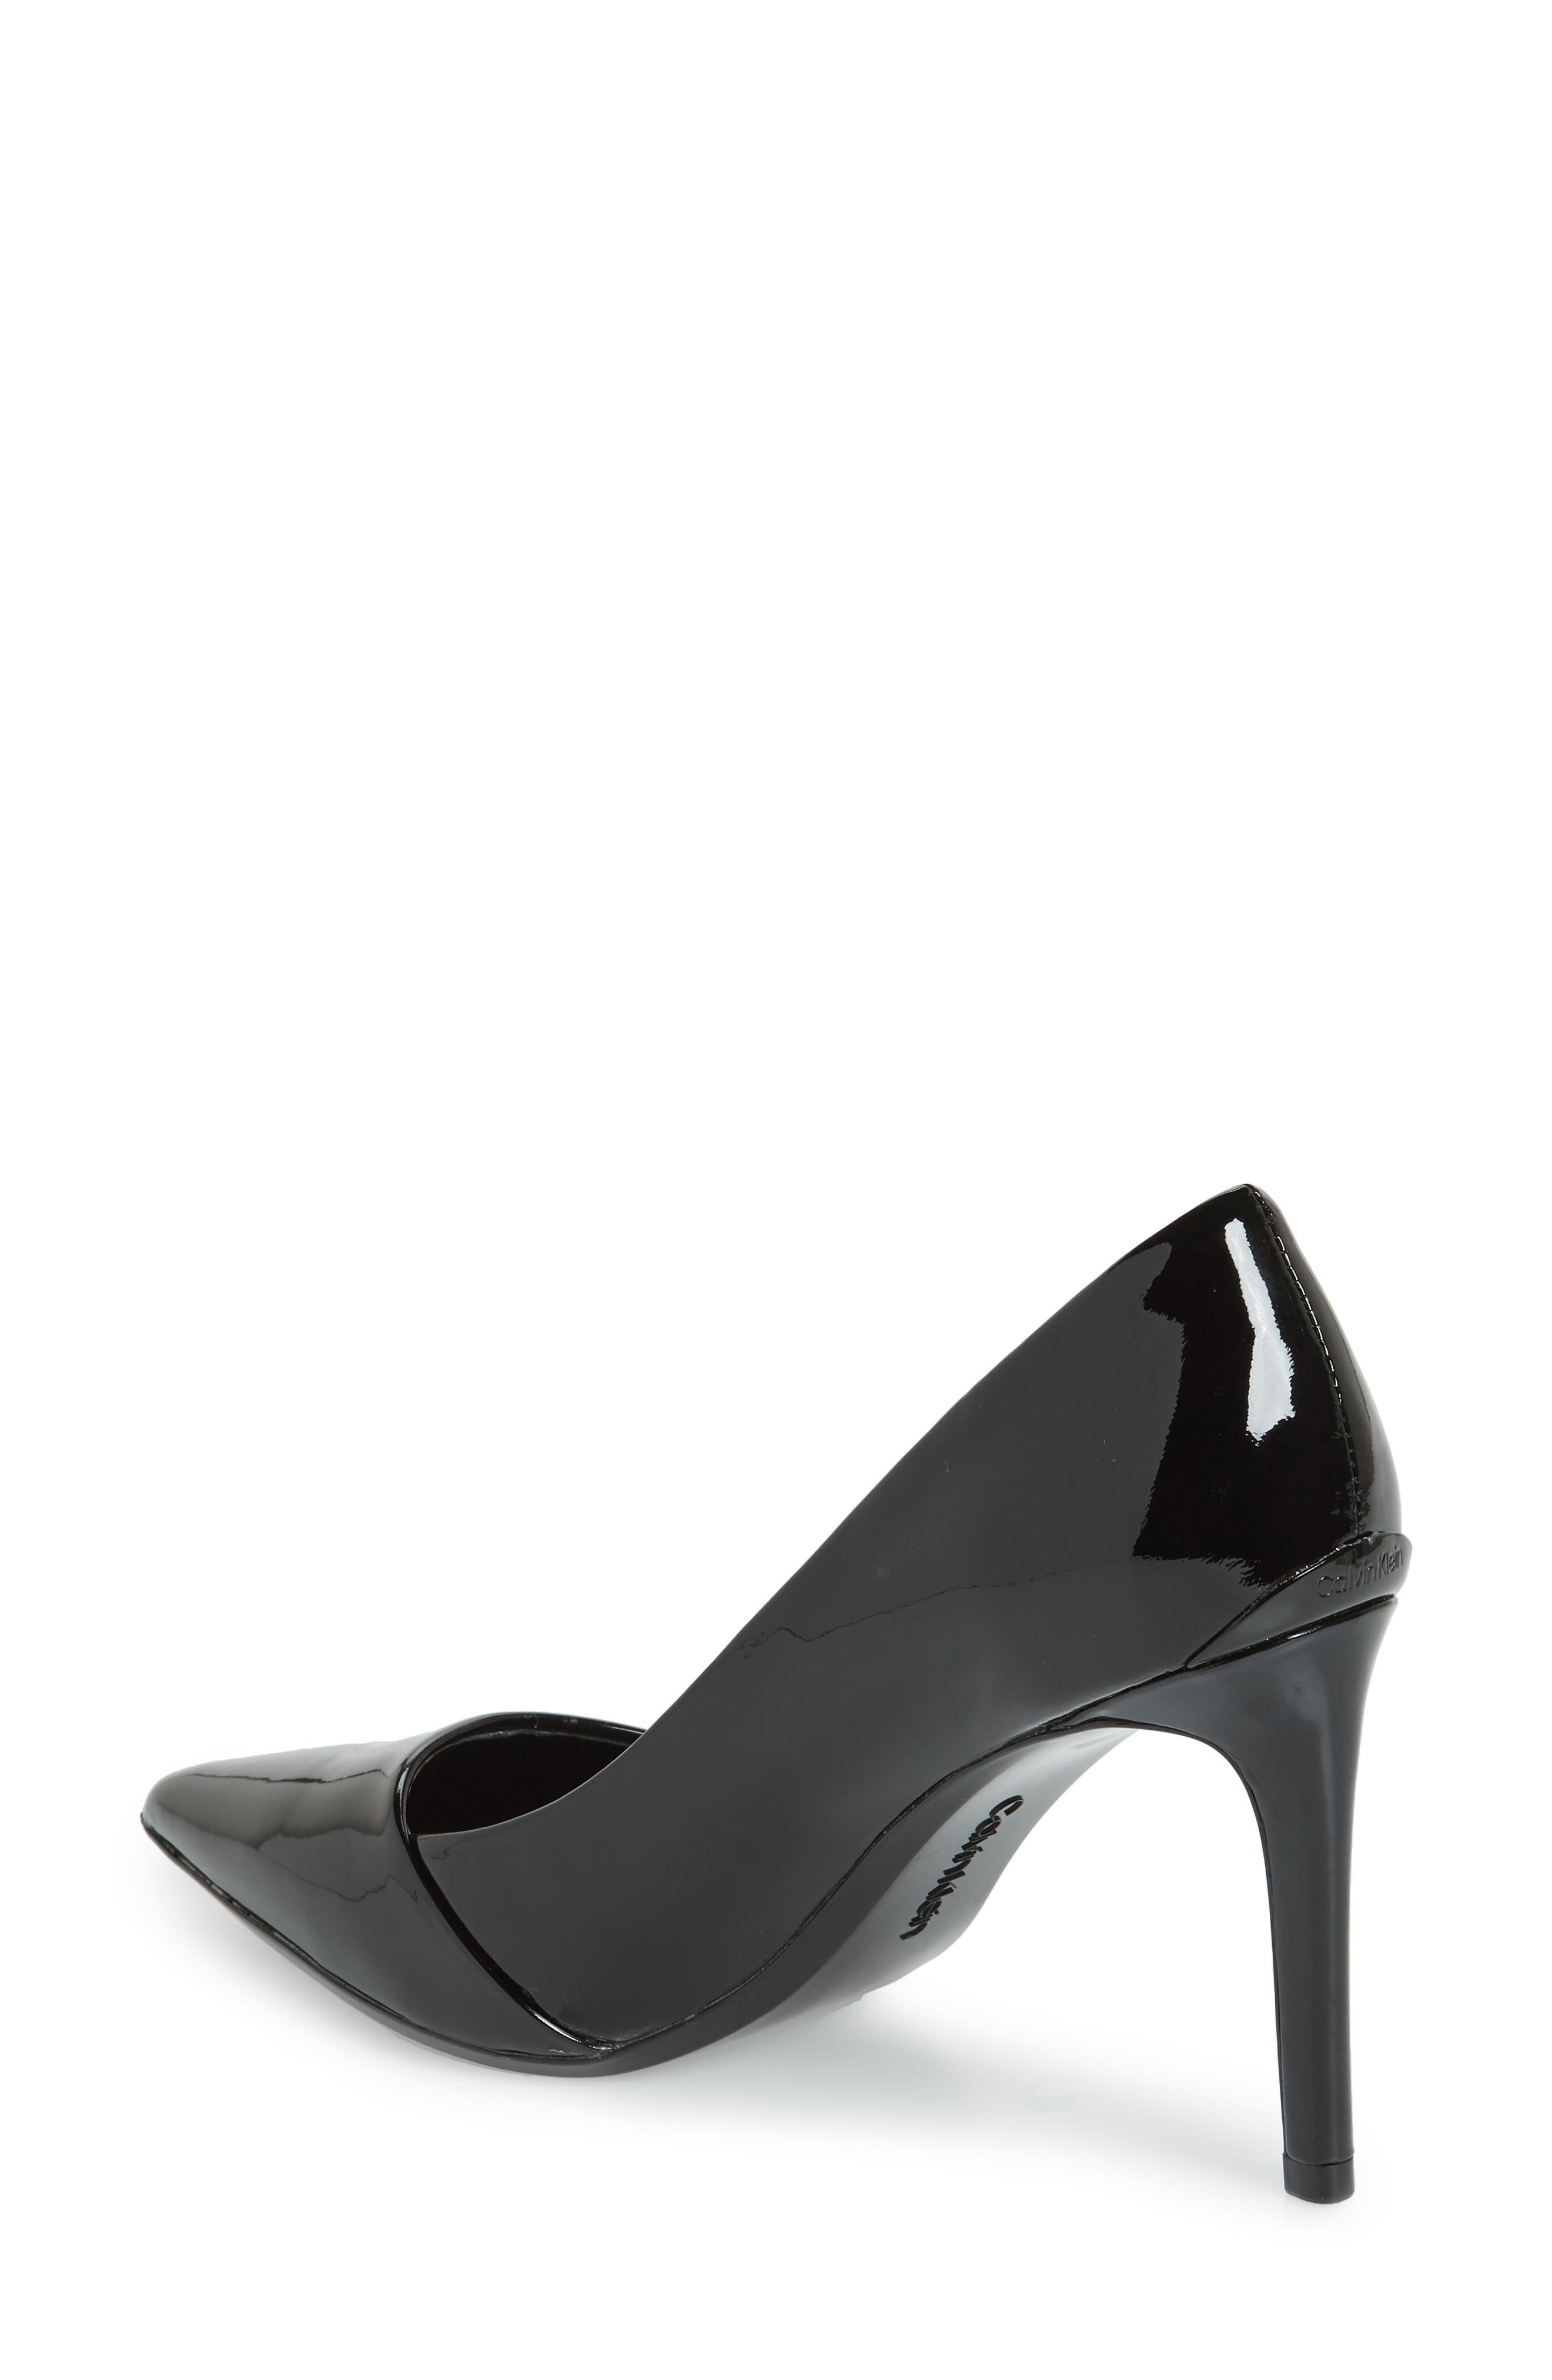 CALVIN KLEIN, Roslyn Pointed Toe Pump, Alternate thumbnail 2, color, BLACK PATENT LEATHER